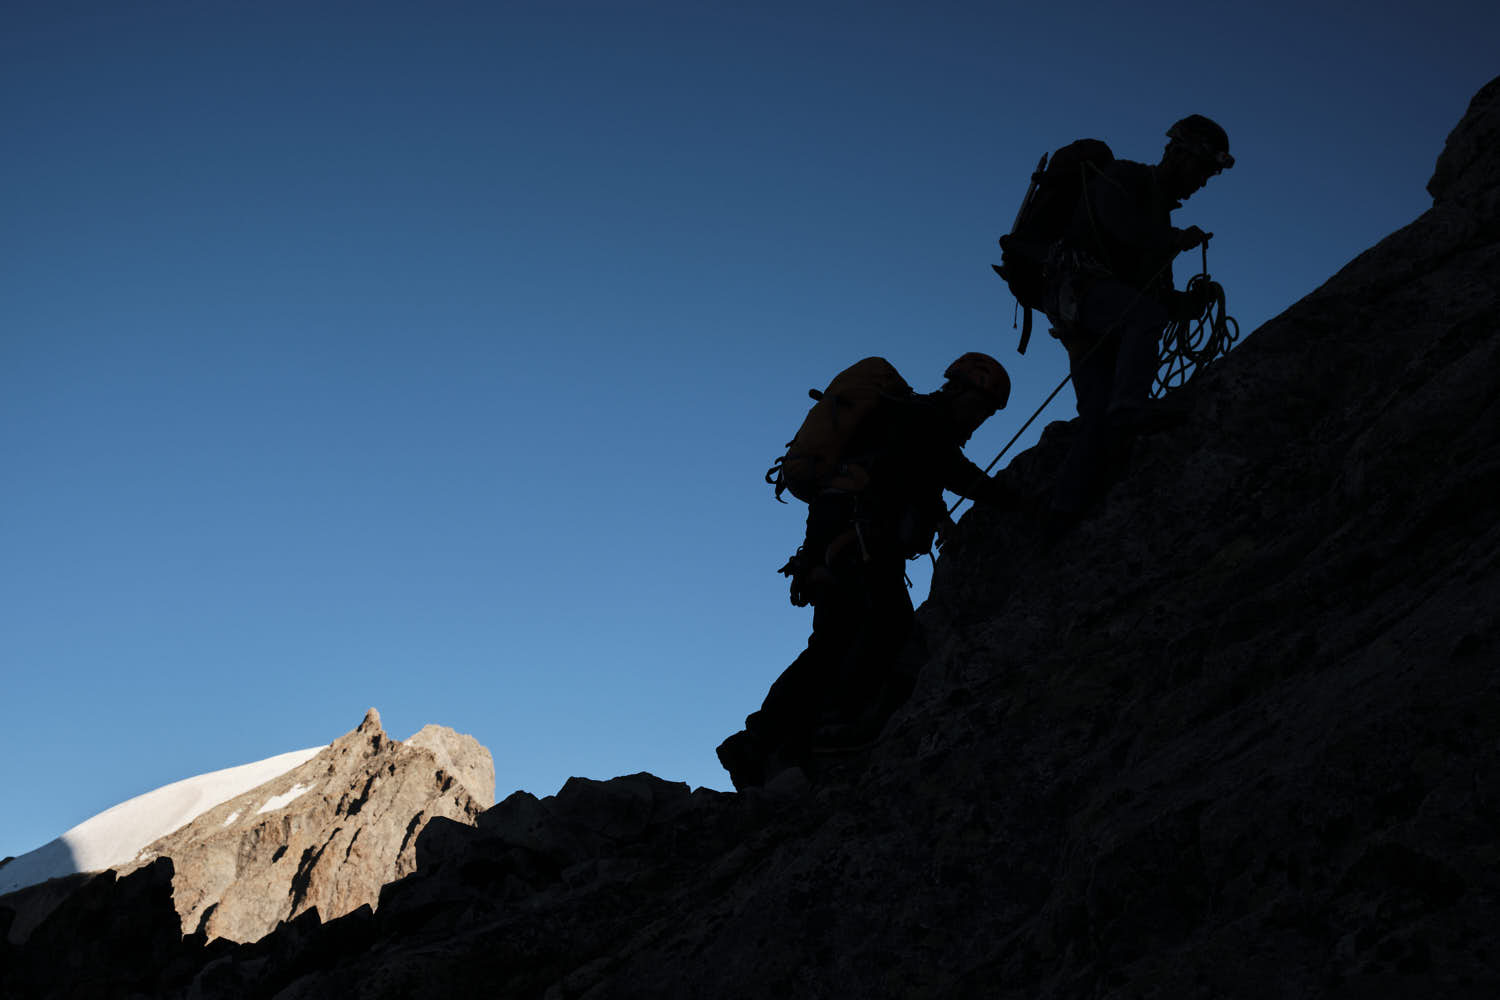 Two persons roped up together while they climb a mountain slope.